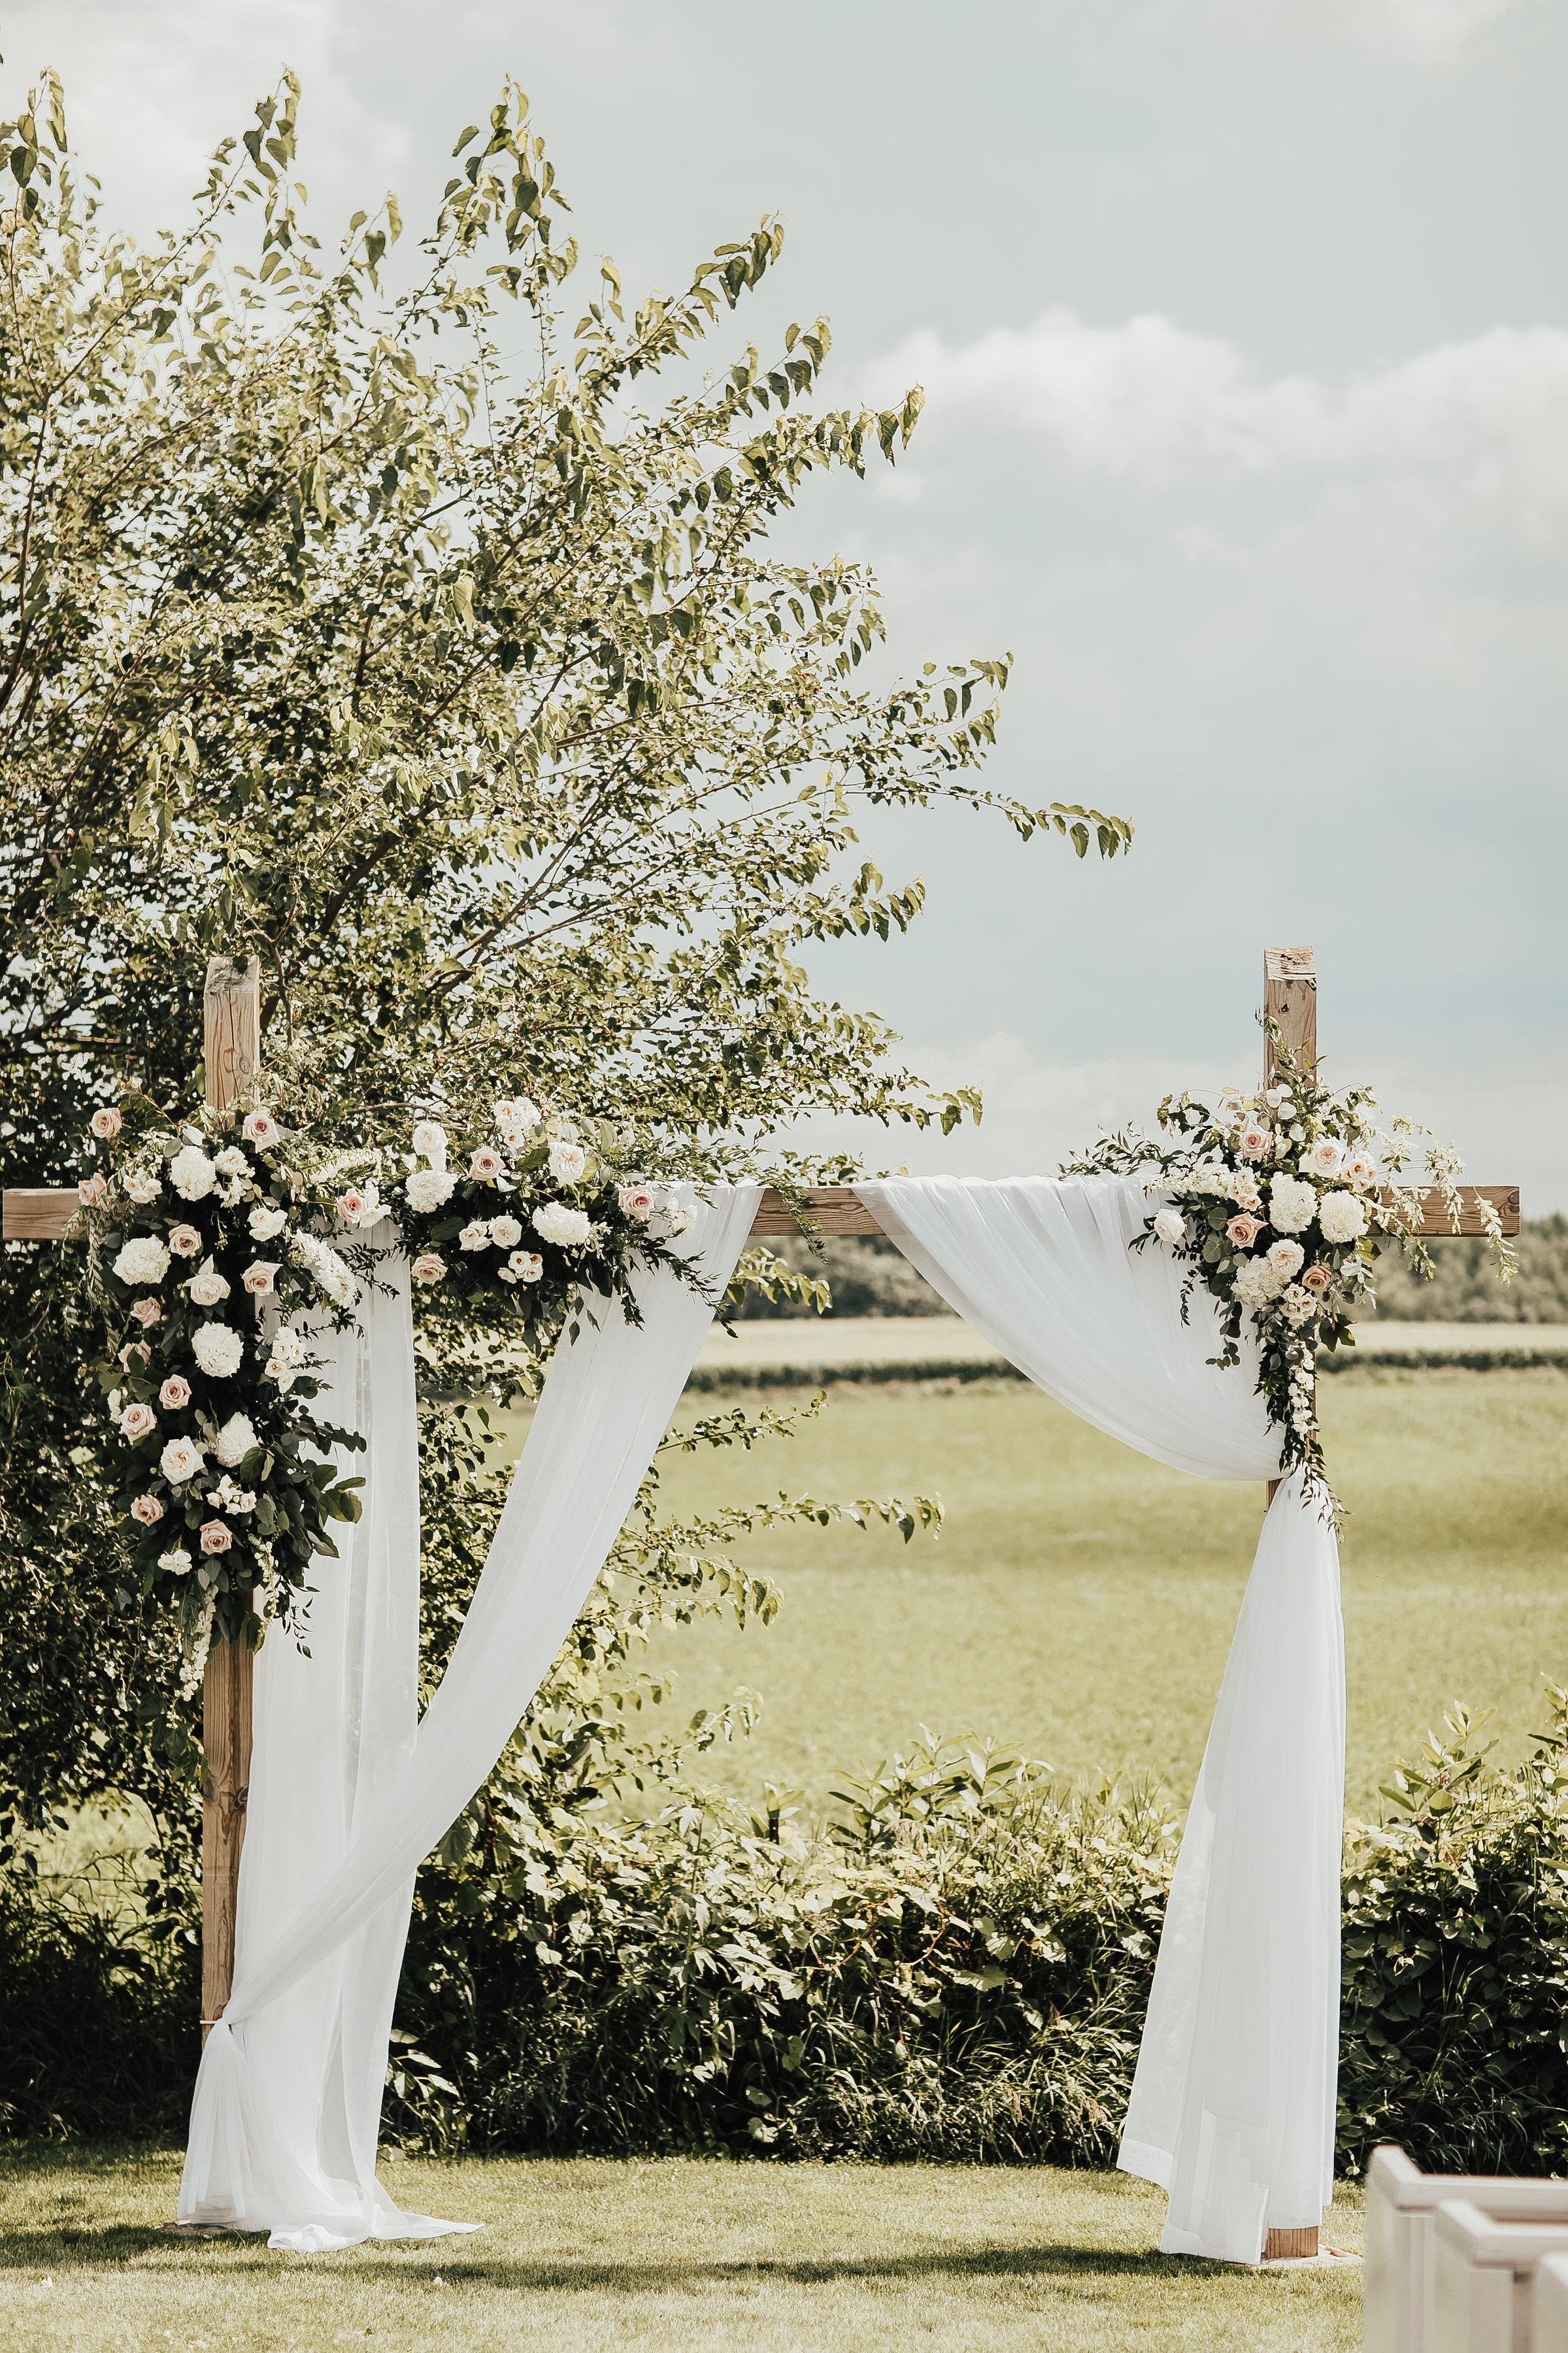 White draping on a wooden arch complimented with floral arrangements for an outdoor wedding ceremony in Minnesota.